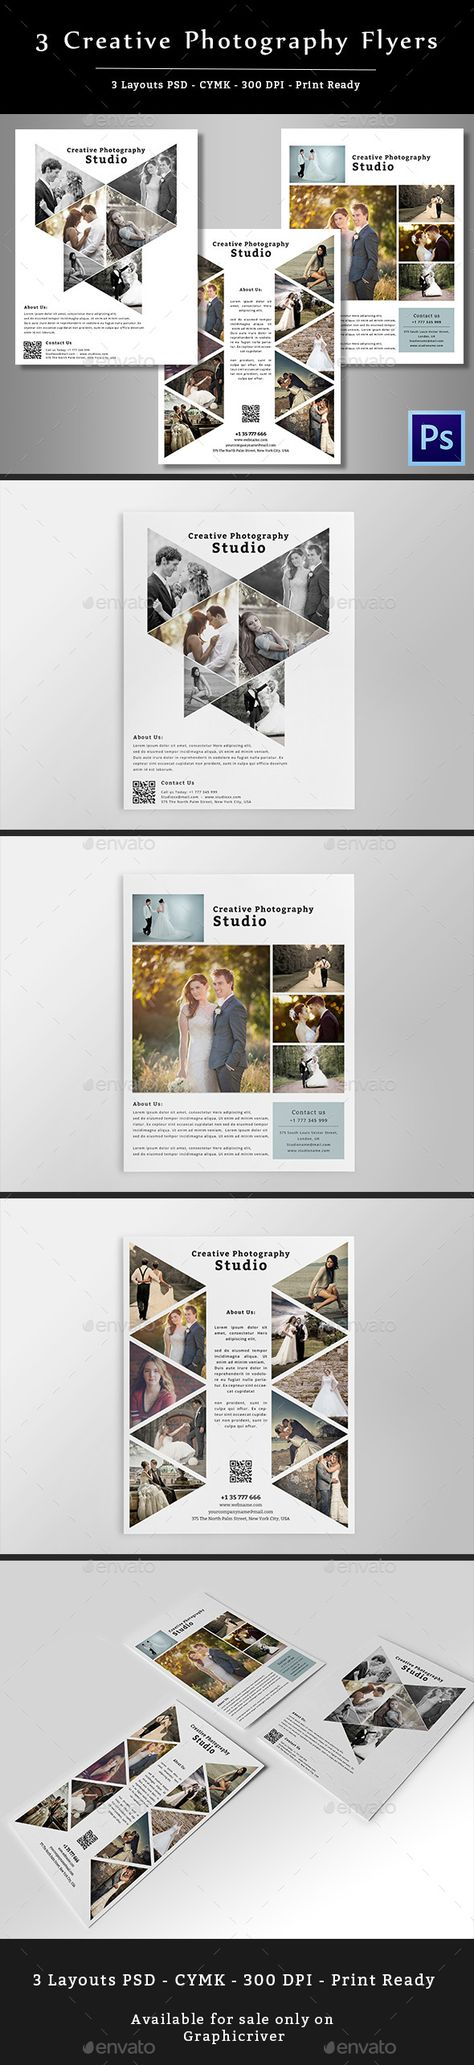 55 Ideas Photography Studio Design Professional Photographers For 2019